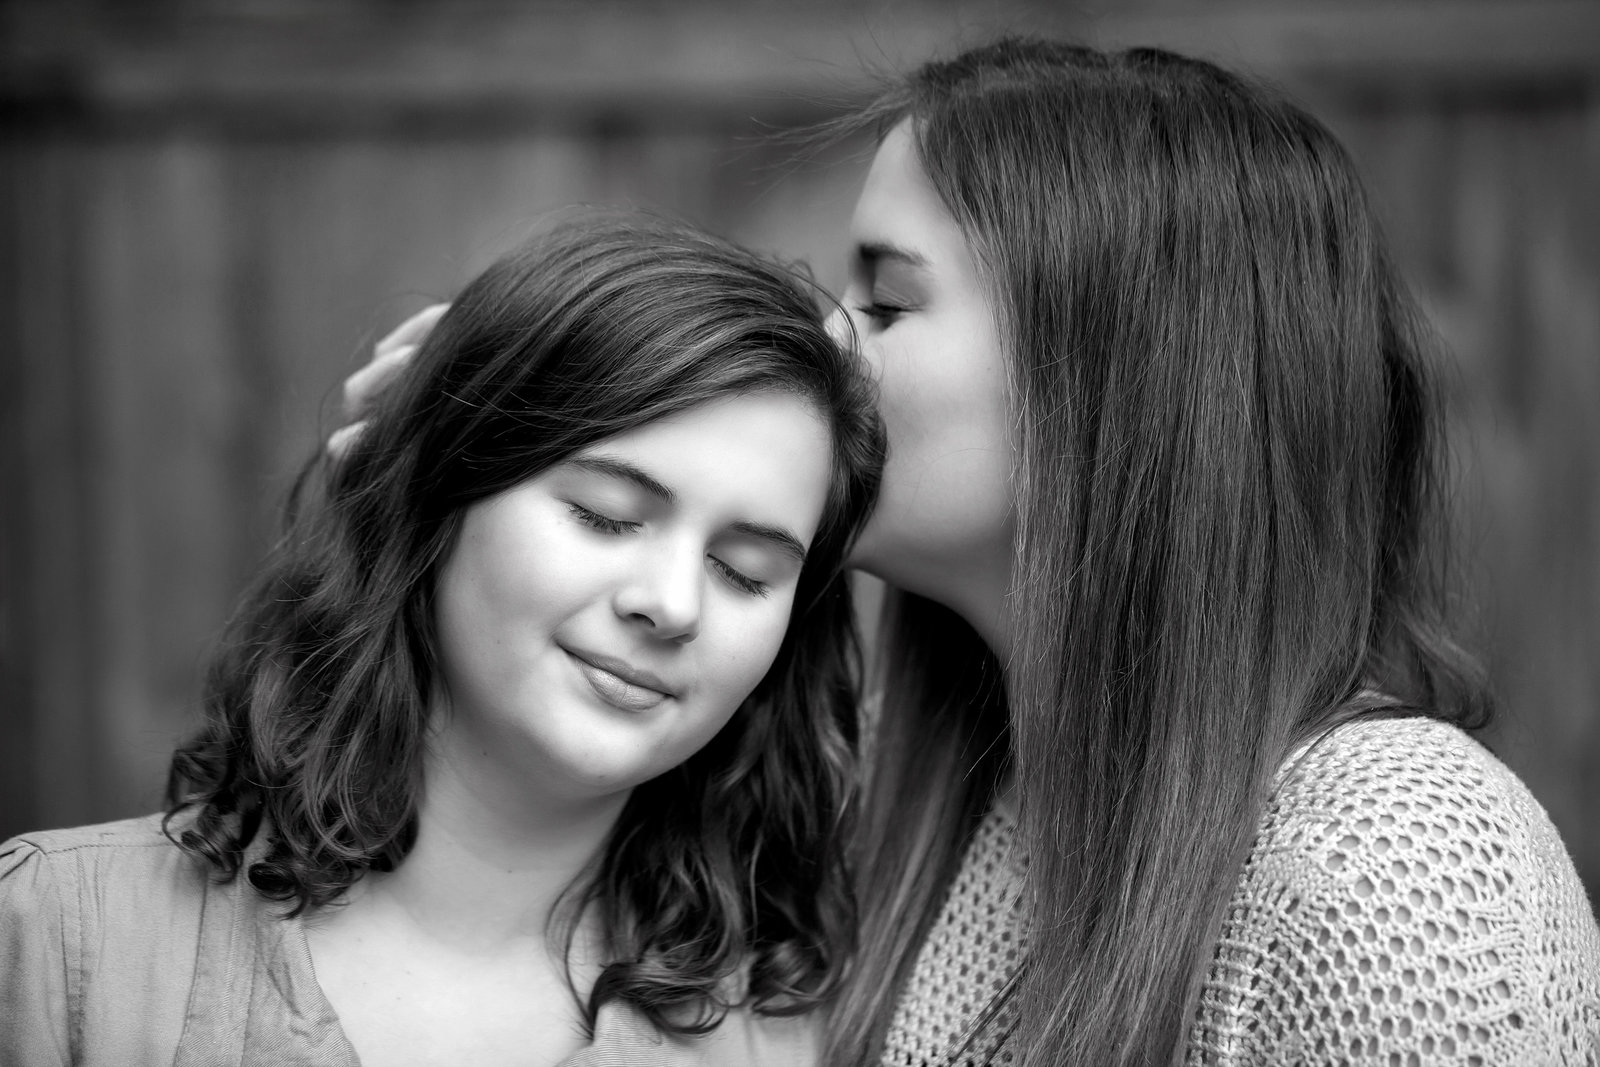 Sisters and best friends having a tender moment during outdoor photo session